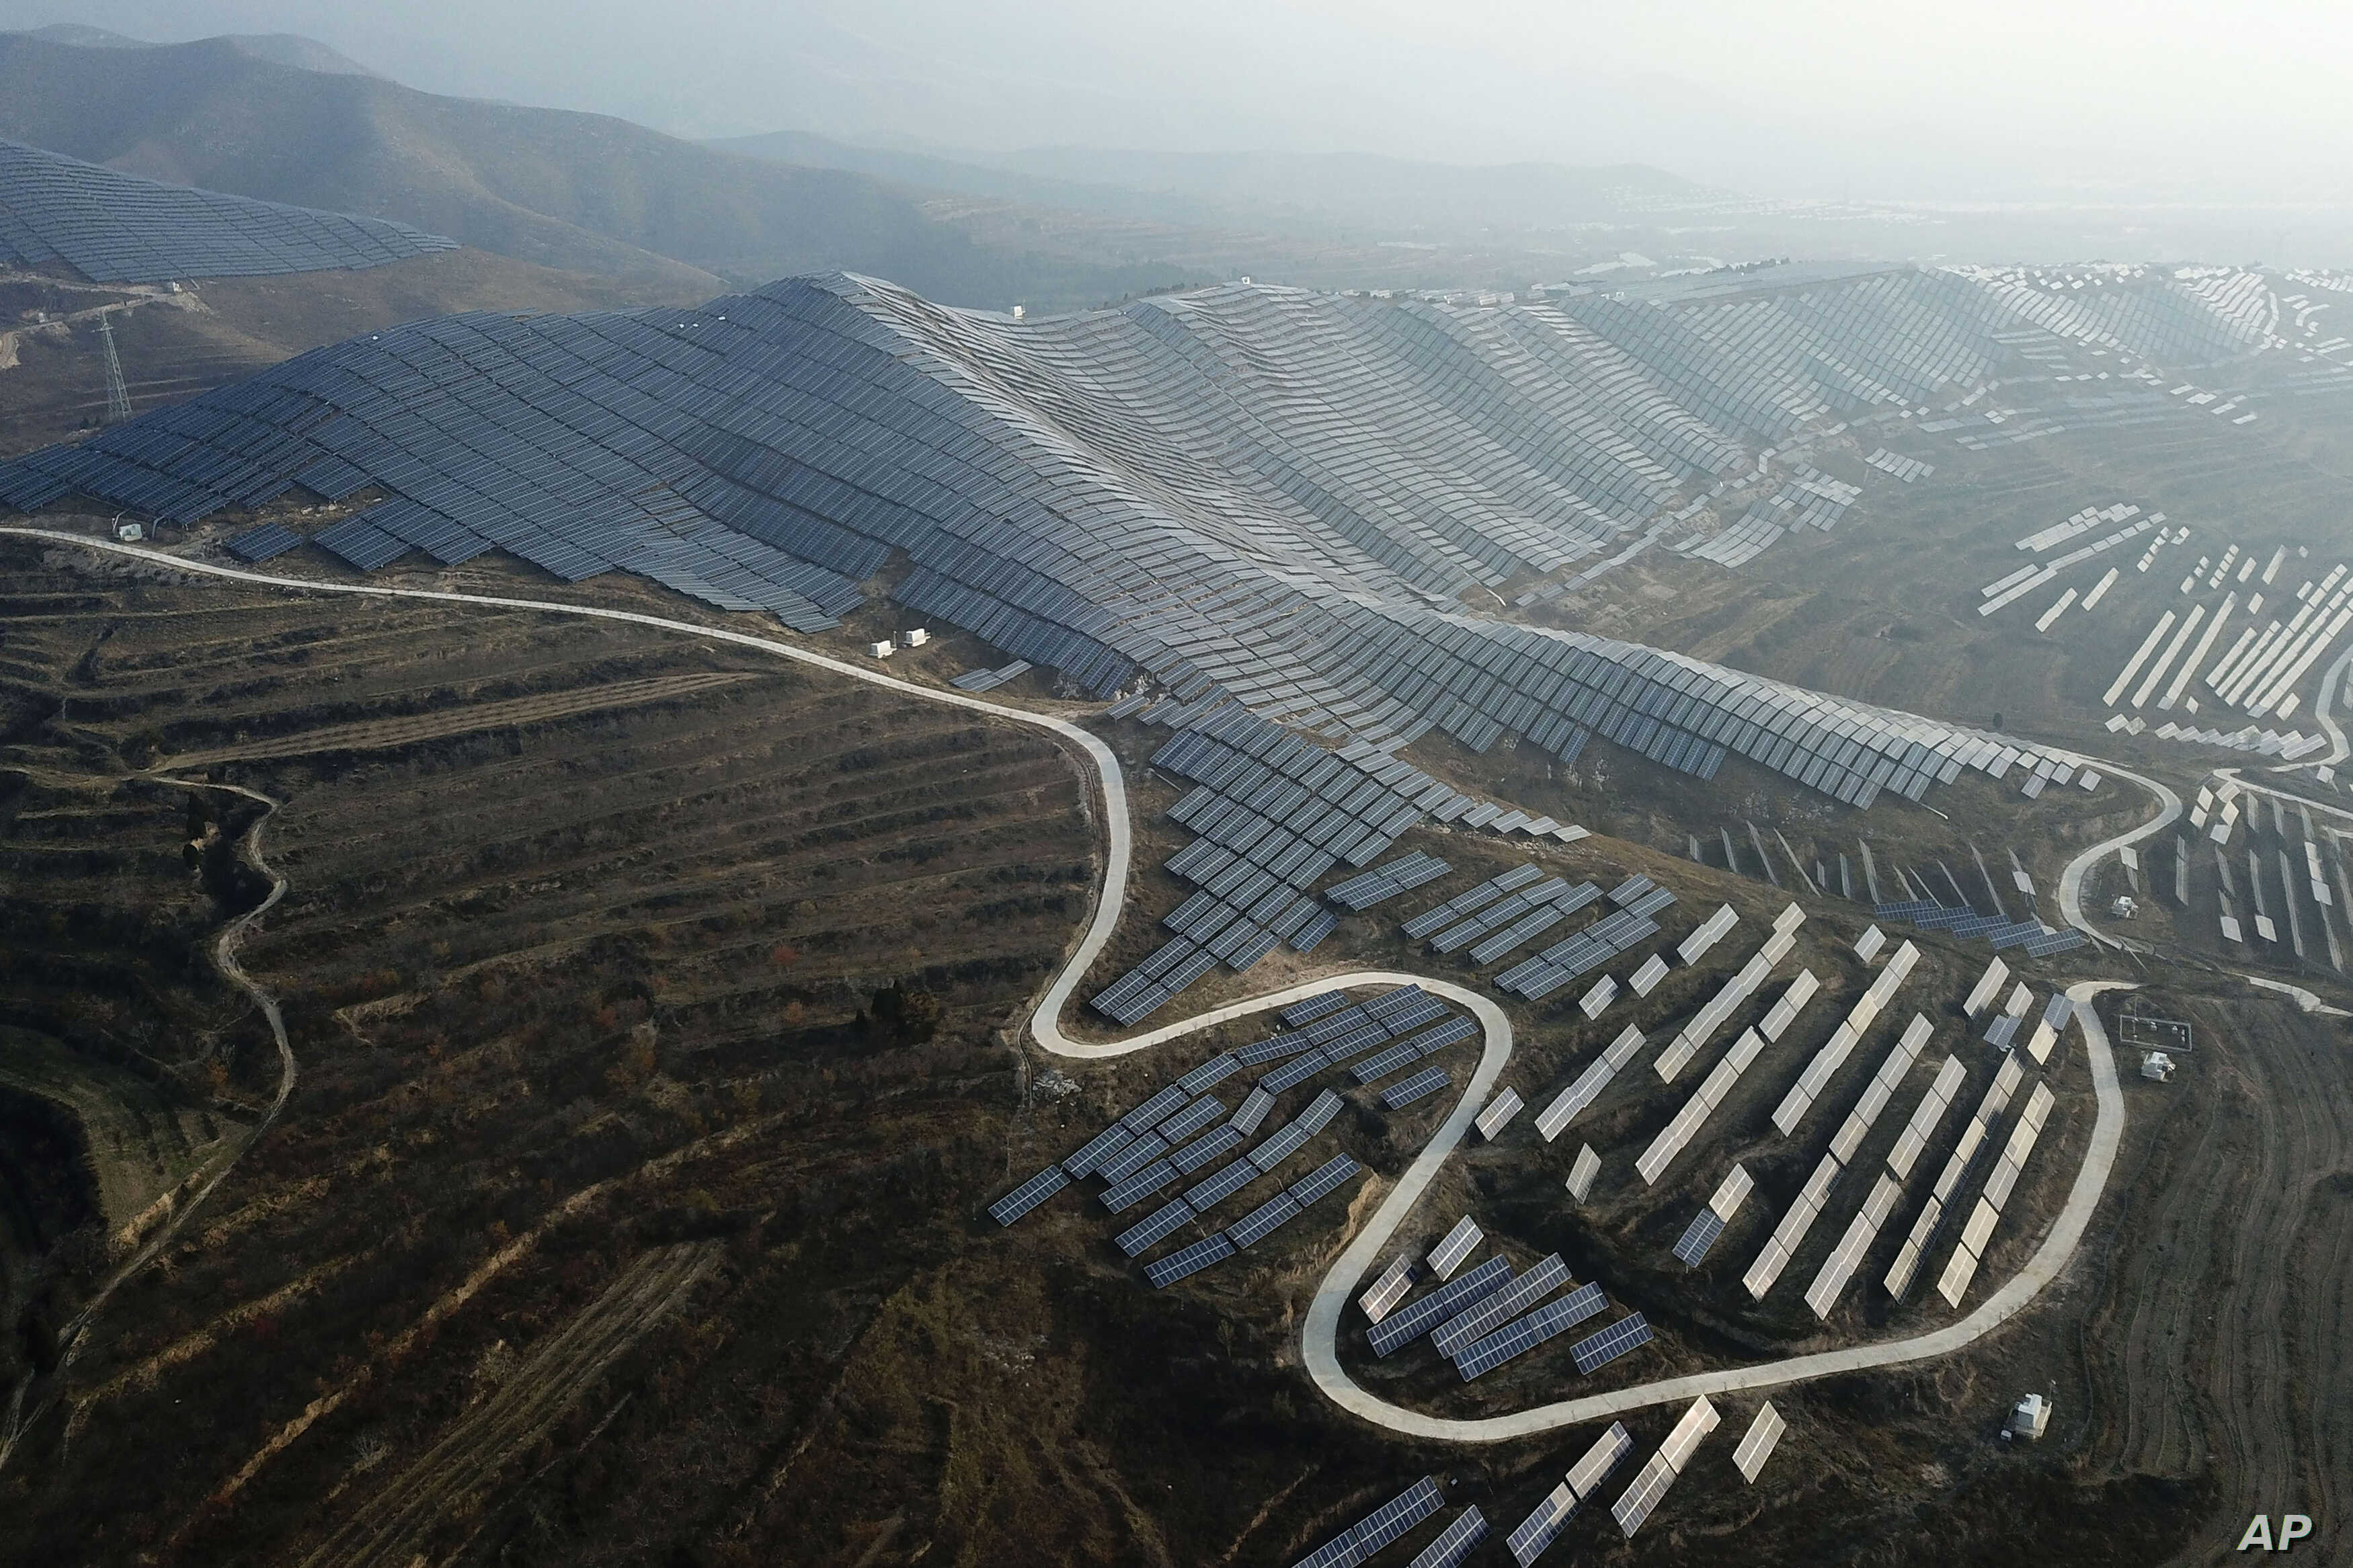 A solar panel installation is seen in Ruicheng County in central China's Shanxi Province.